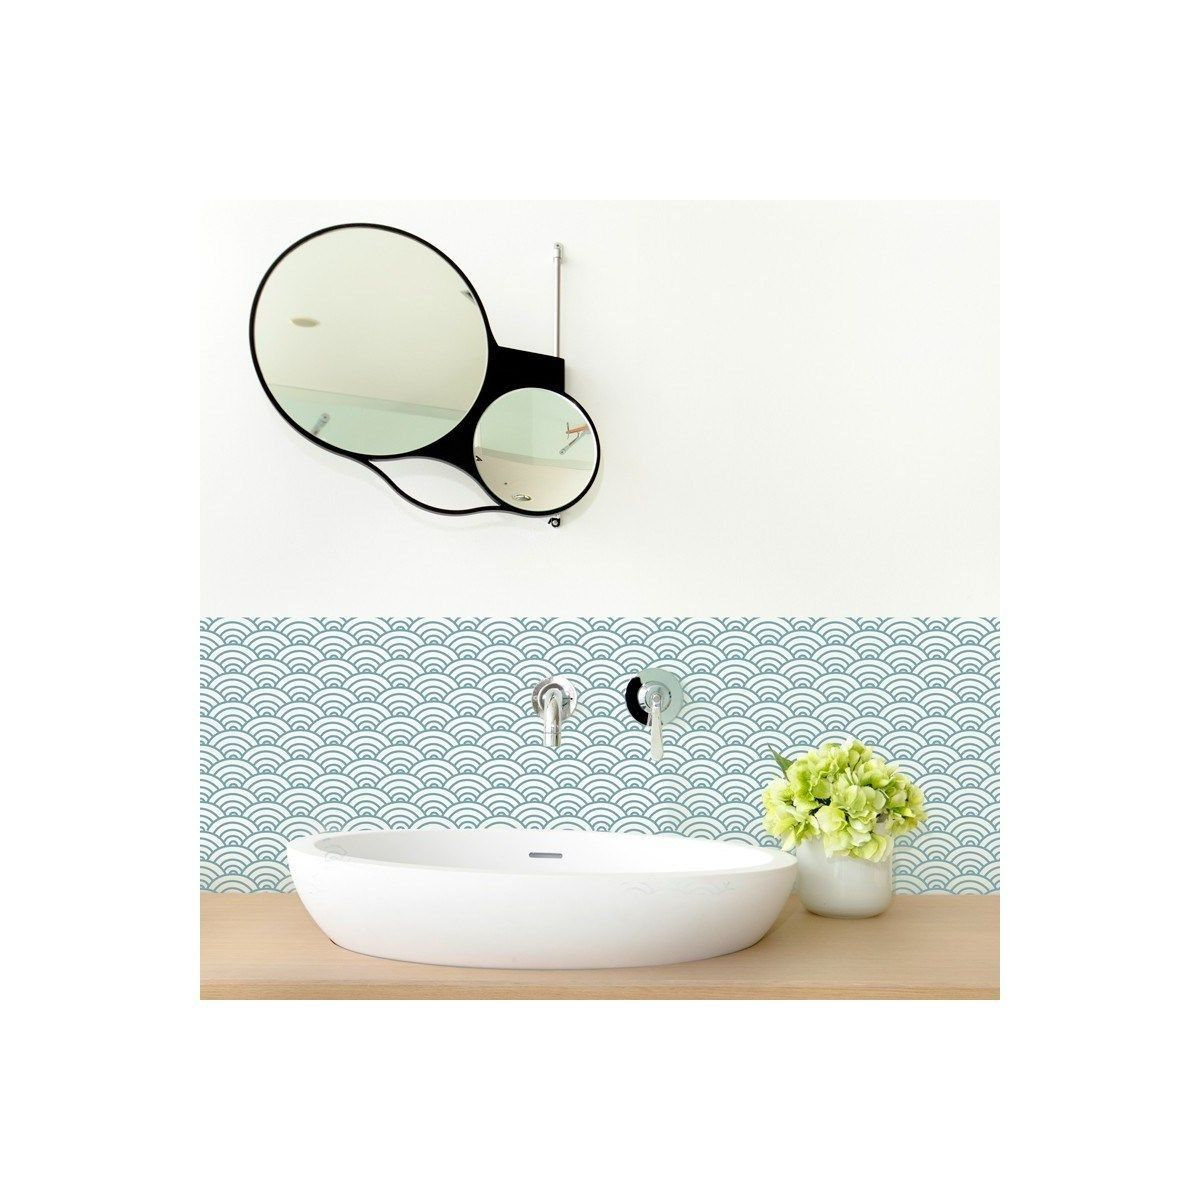 Credence Salle De Bain Adhesive Japanese Touch Lot De 2 Credence Salle De Bain Toile De Verre Et Credence